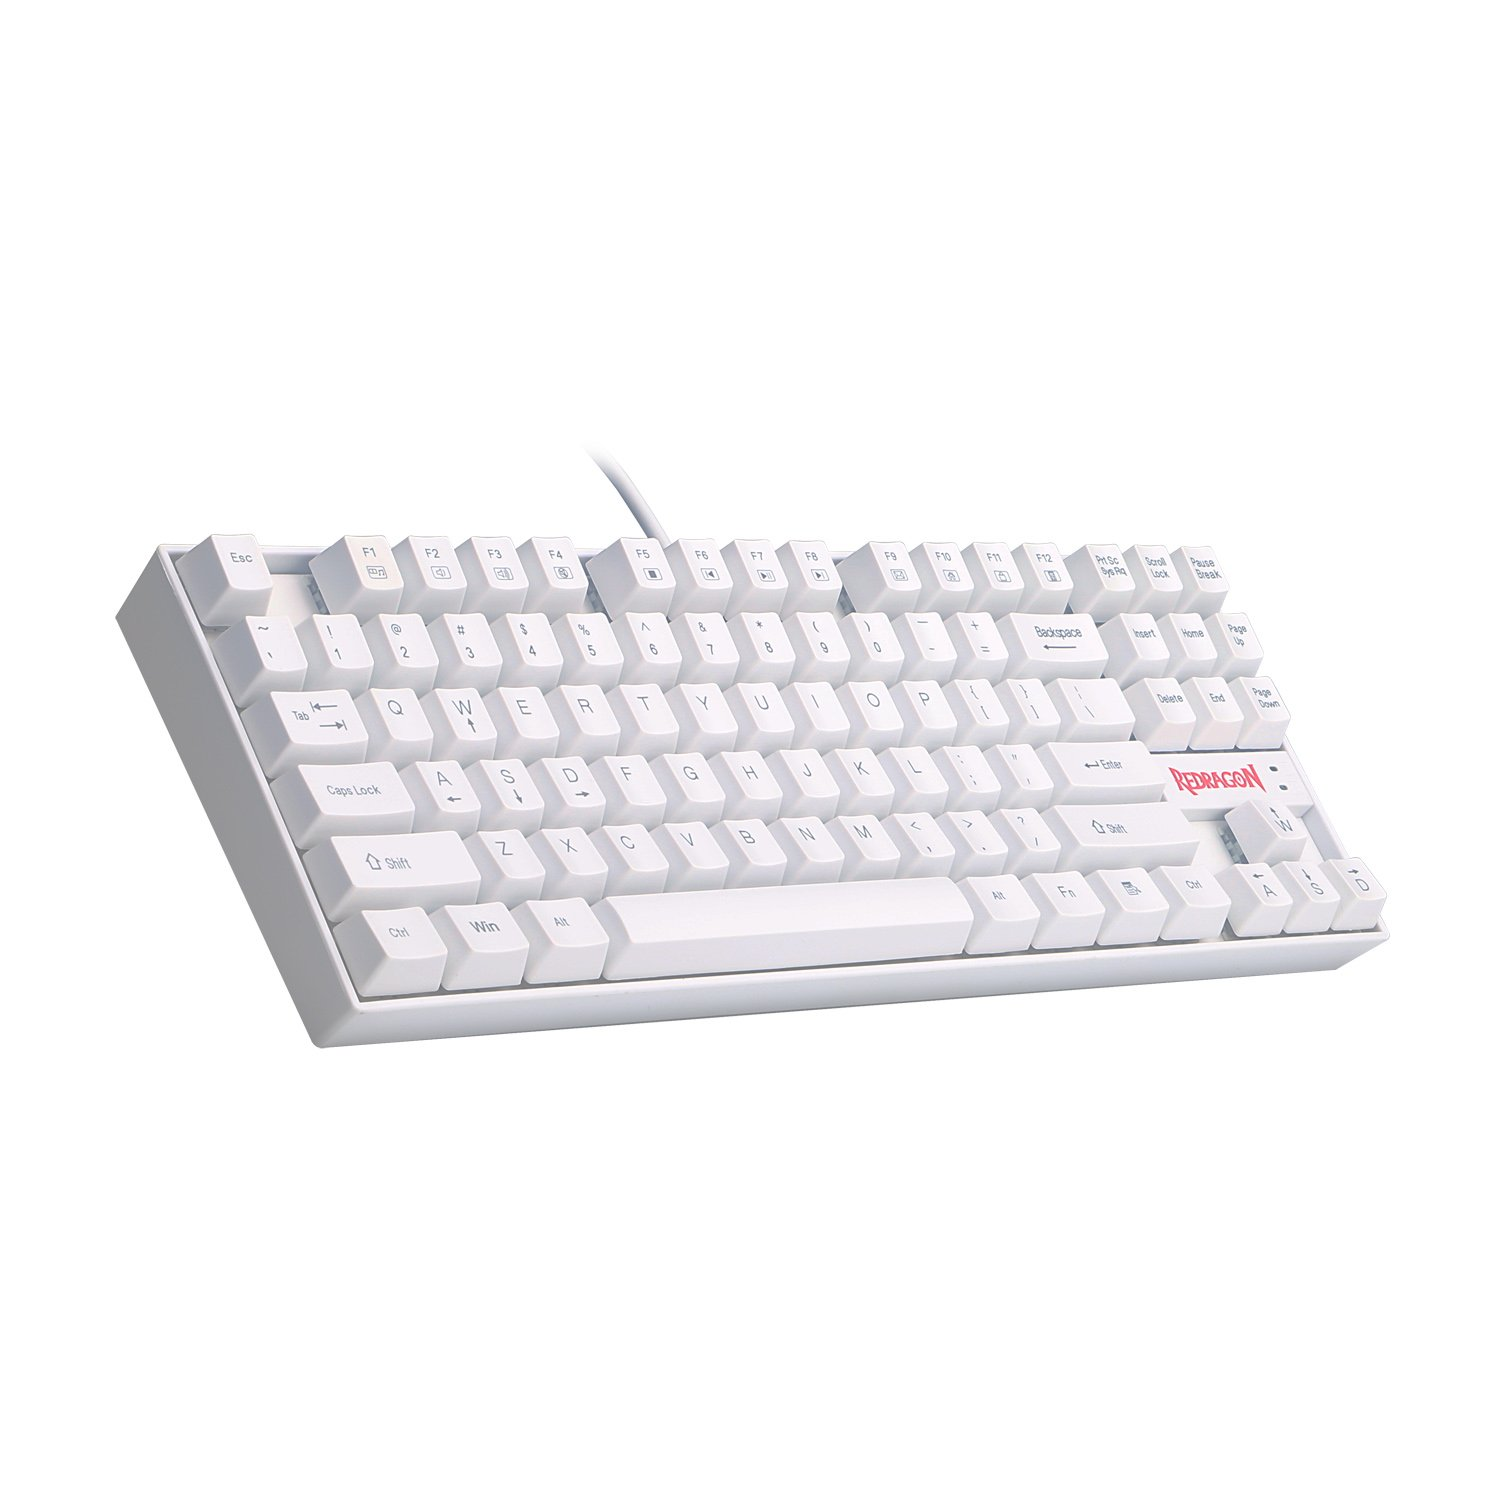 Redragon K552W N Mechanical Keyboard Construction